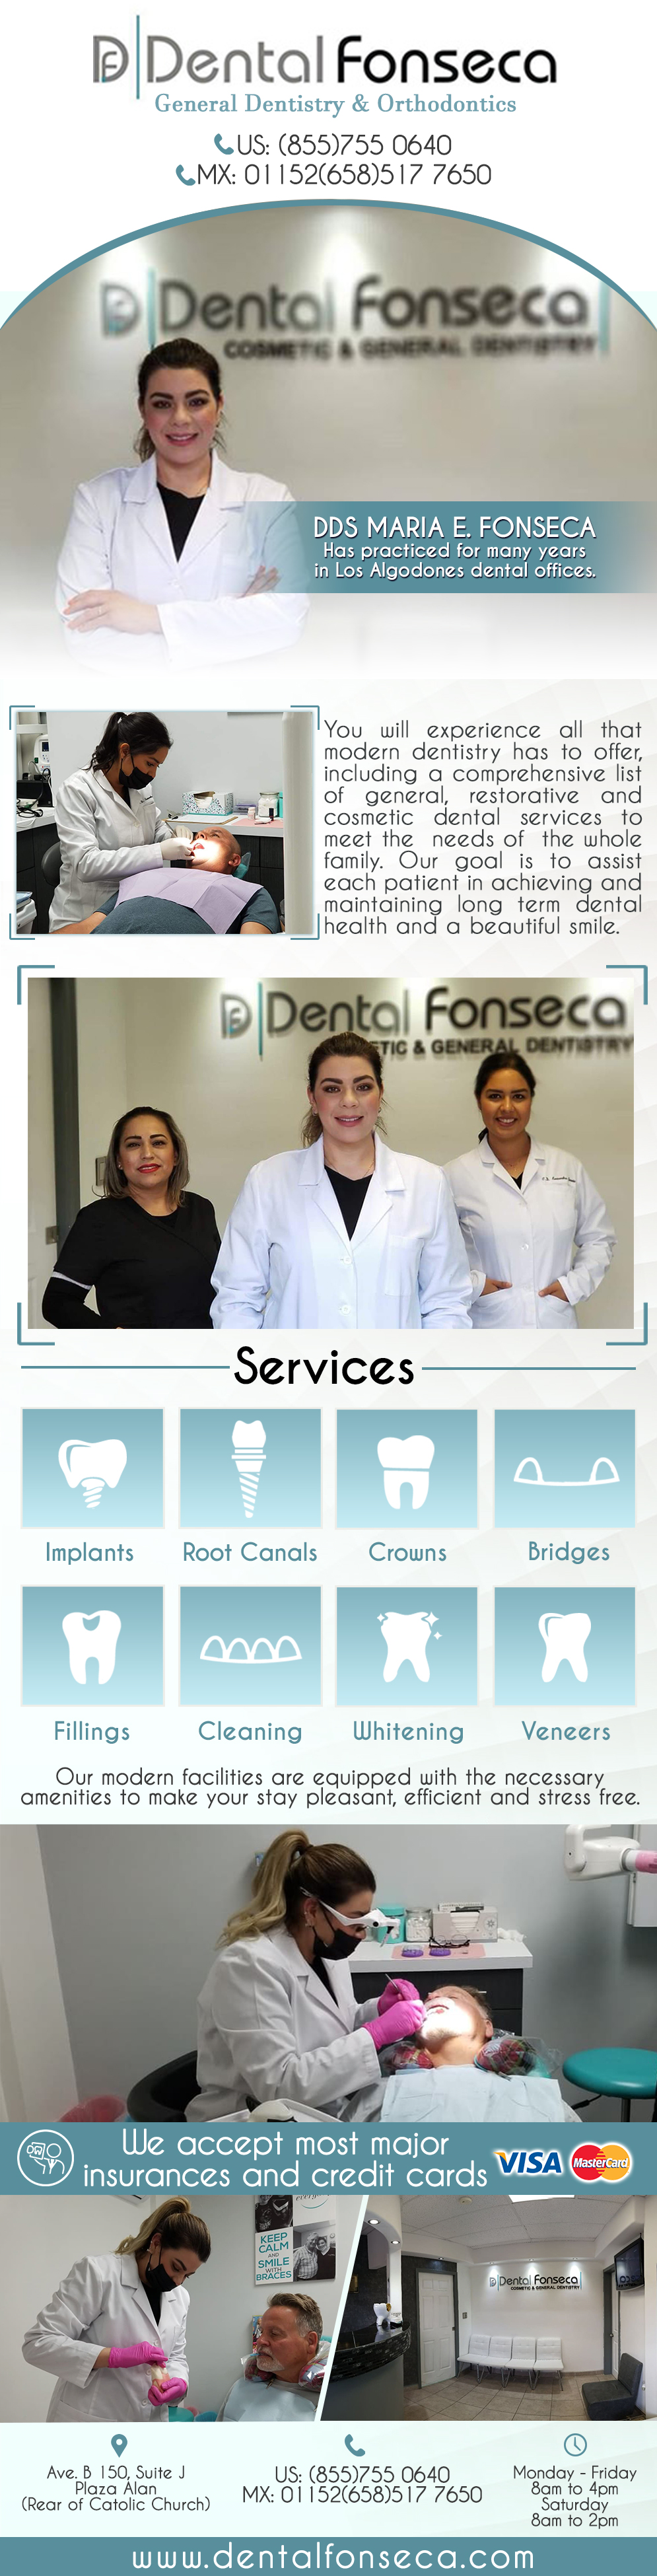 DENTAL FONSECA  DDS Maria E. Fonseca in Algodones  in Algodones  DENTAL FONSECA Cosmetic & General Dentistry. DDS Maria E. Fonseca has practiced for many years in Los Algodones dental offices.